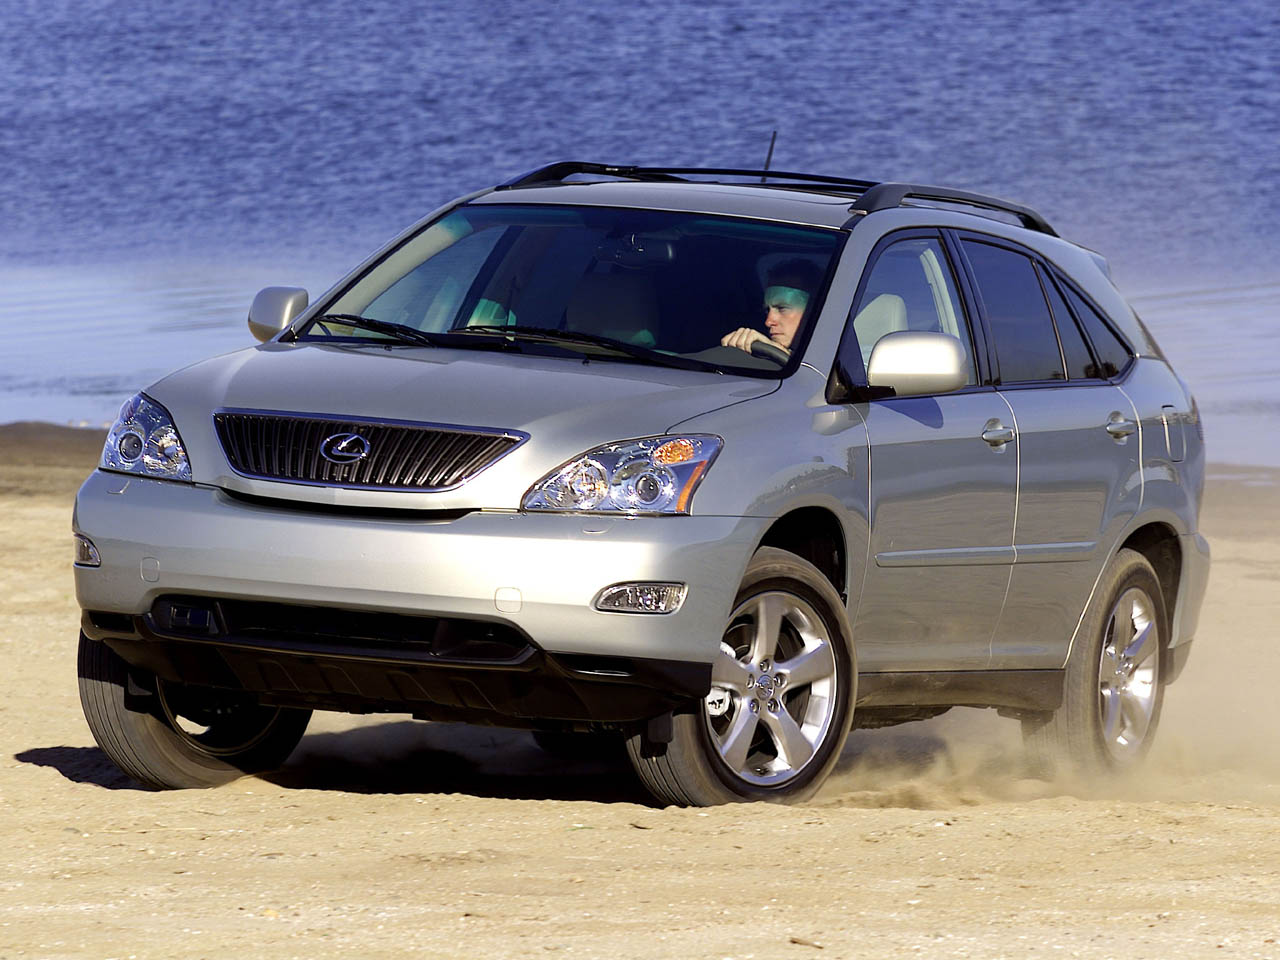 Meet RX330, the greatest ever SUV in Lexus 2006 range! #9